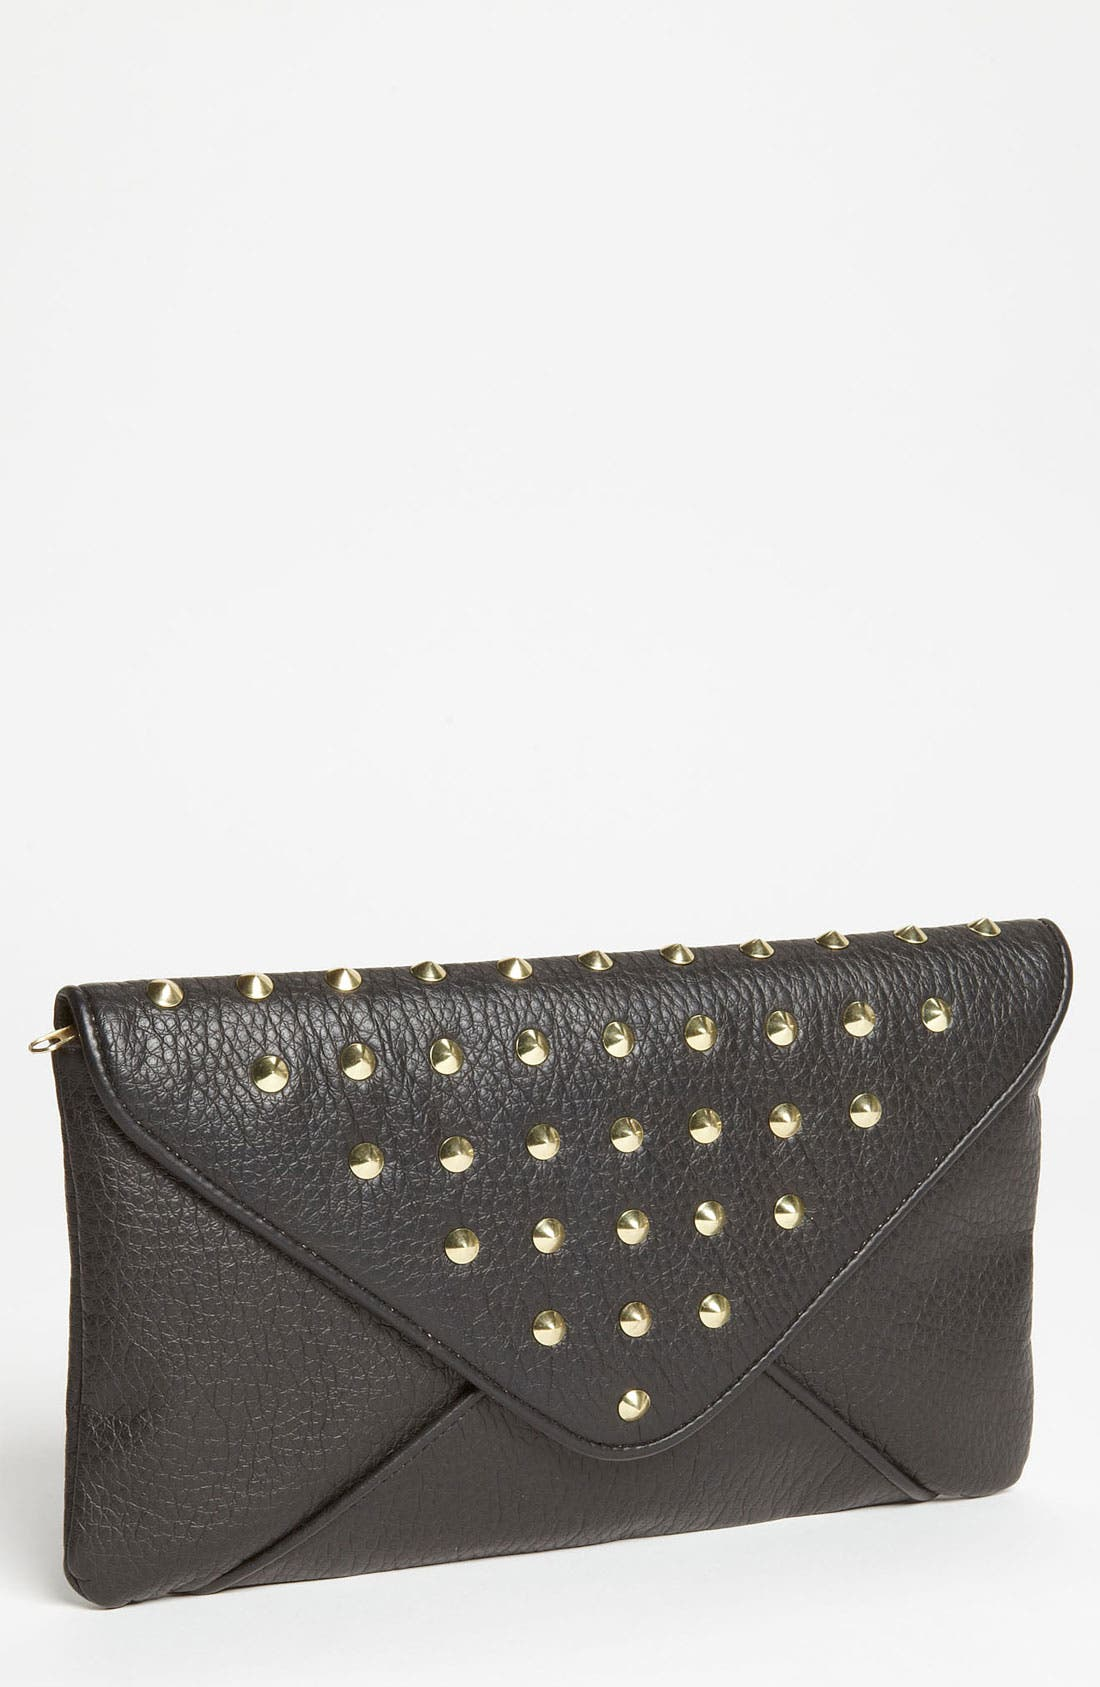 Alternate Image 1 Selected - Lulu Studded Envelope Clutch